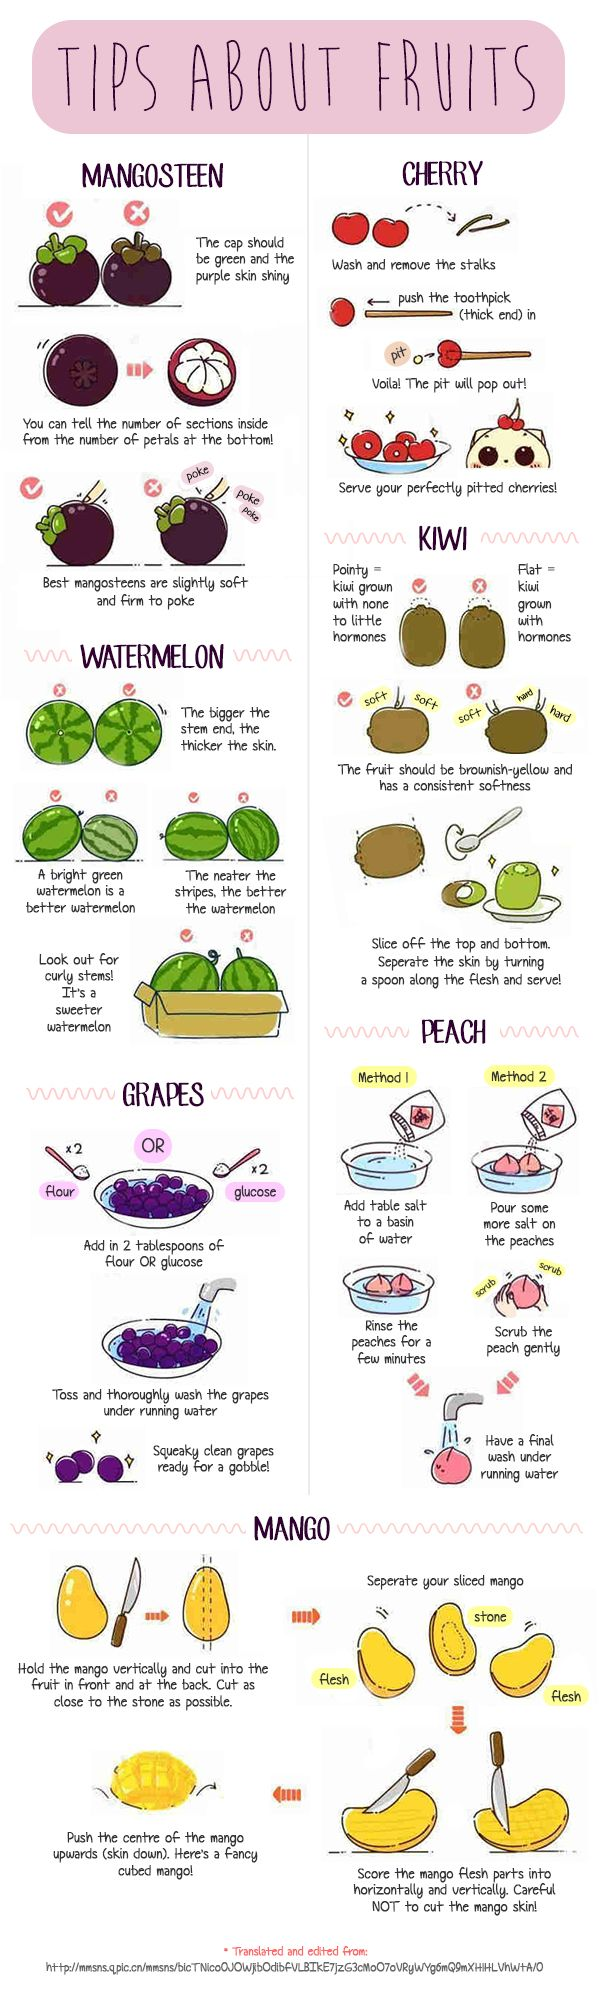 Found this very cute and handy tip about picking and handling fruits from a Chinese site. Decided to translate and re-layout them in English and share it over here! :3 View the original here: http://mmsns.qpic.cn/mmsns/bicTNico0JOWjibOdibfVLBIkE7jzG3cMoO7oVRyWYg6mQ9mXH1HLVhWtA/0